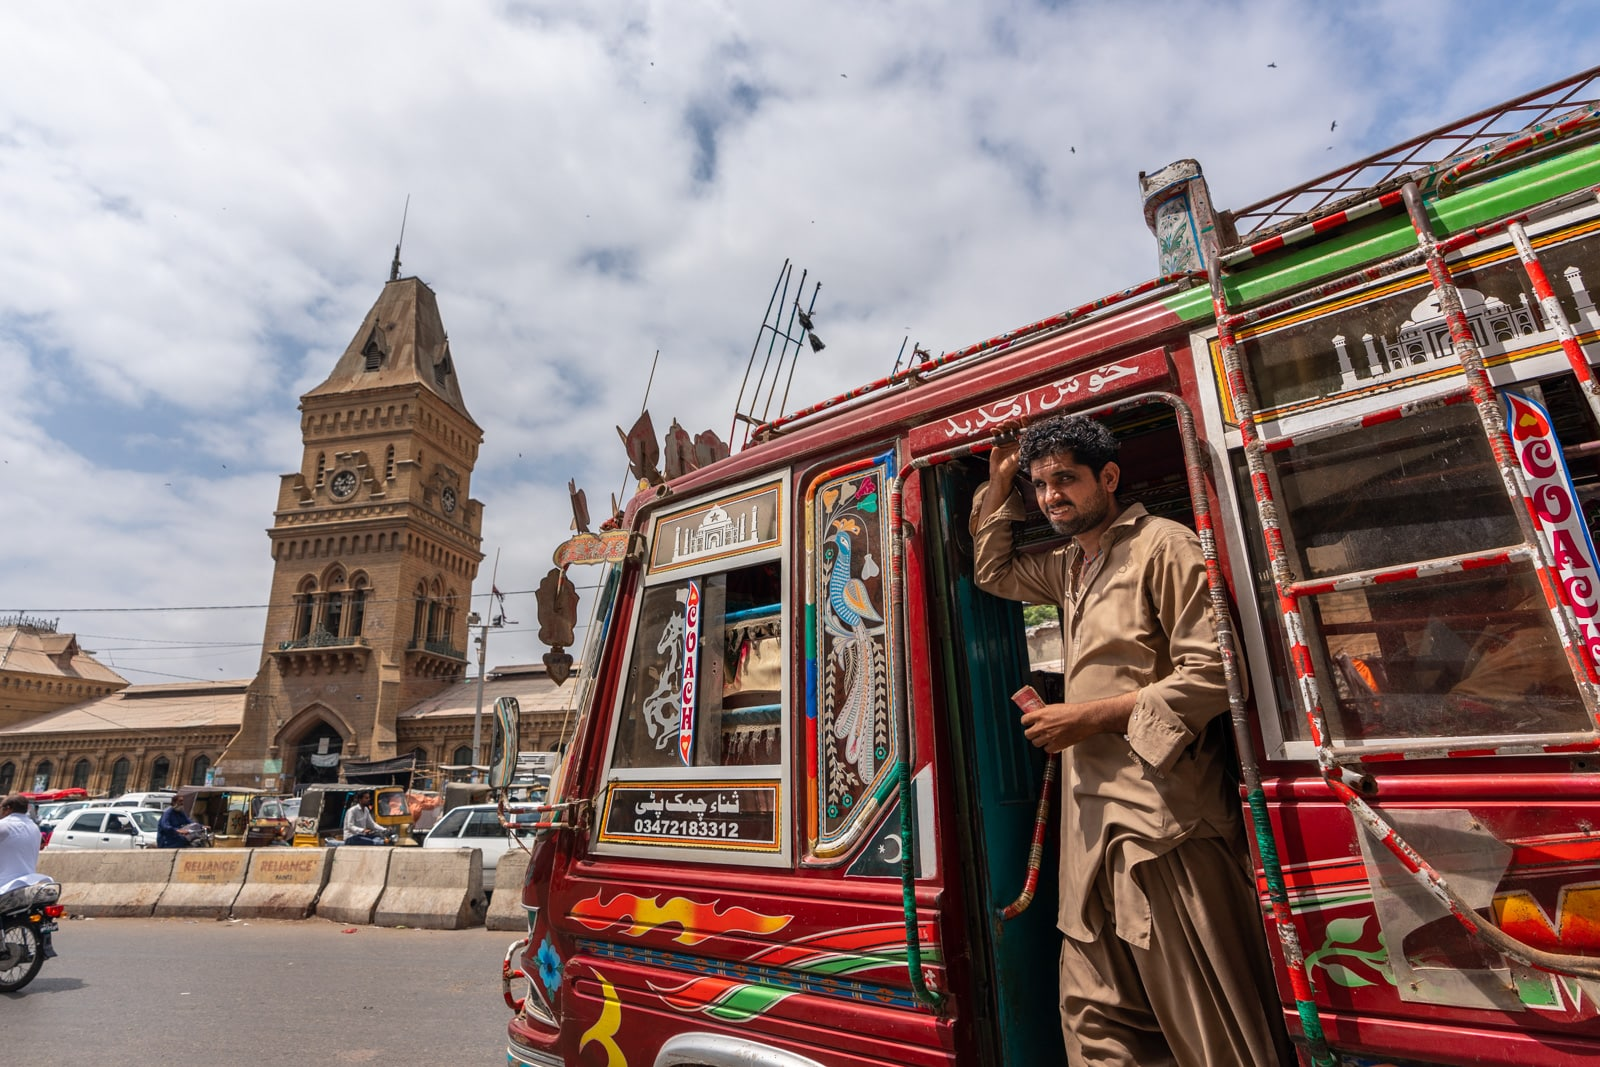 Sinidh travel guide - Trippy rainbow buses in Karachi, Pakistan - Lost With Purpose travel blog